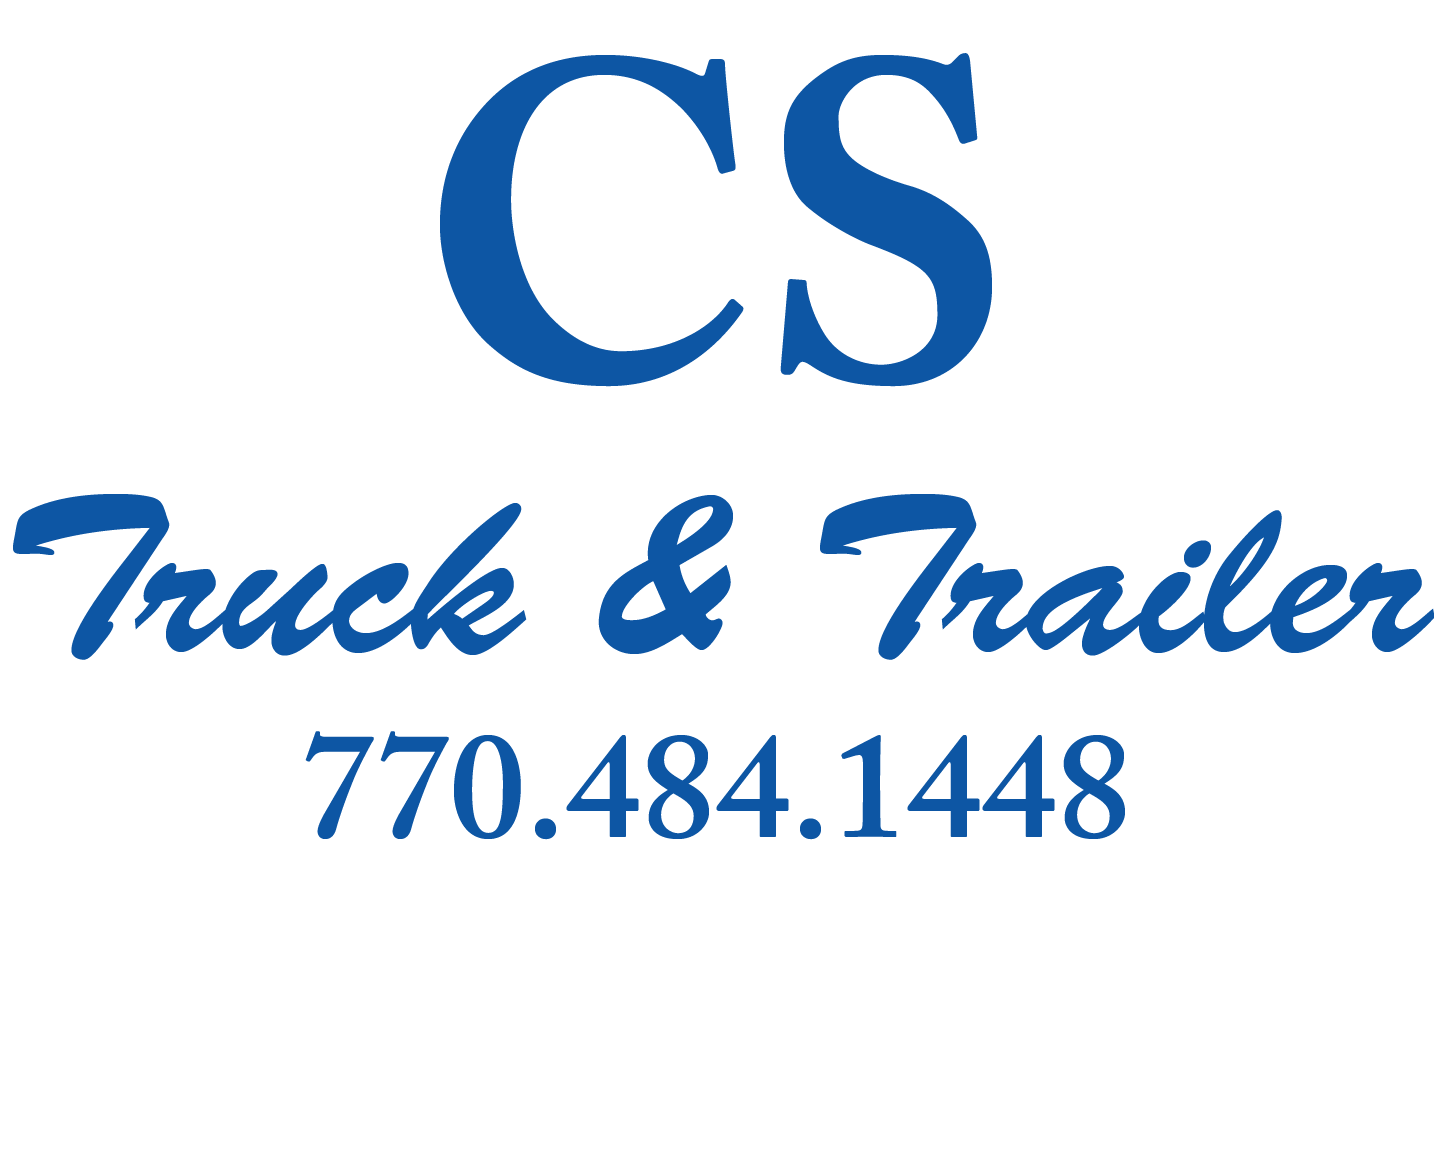 CS Truck and Trailer Company Logo